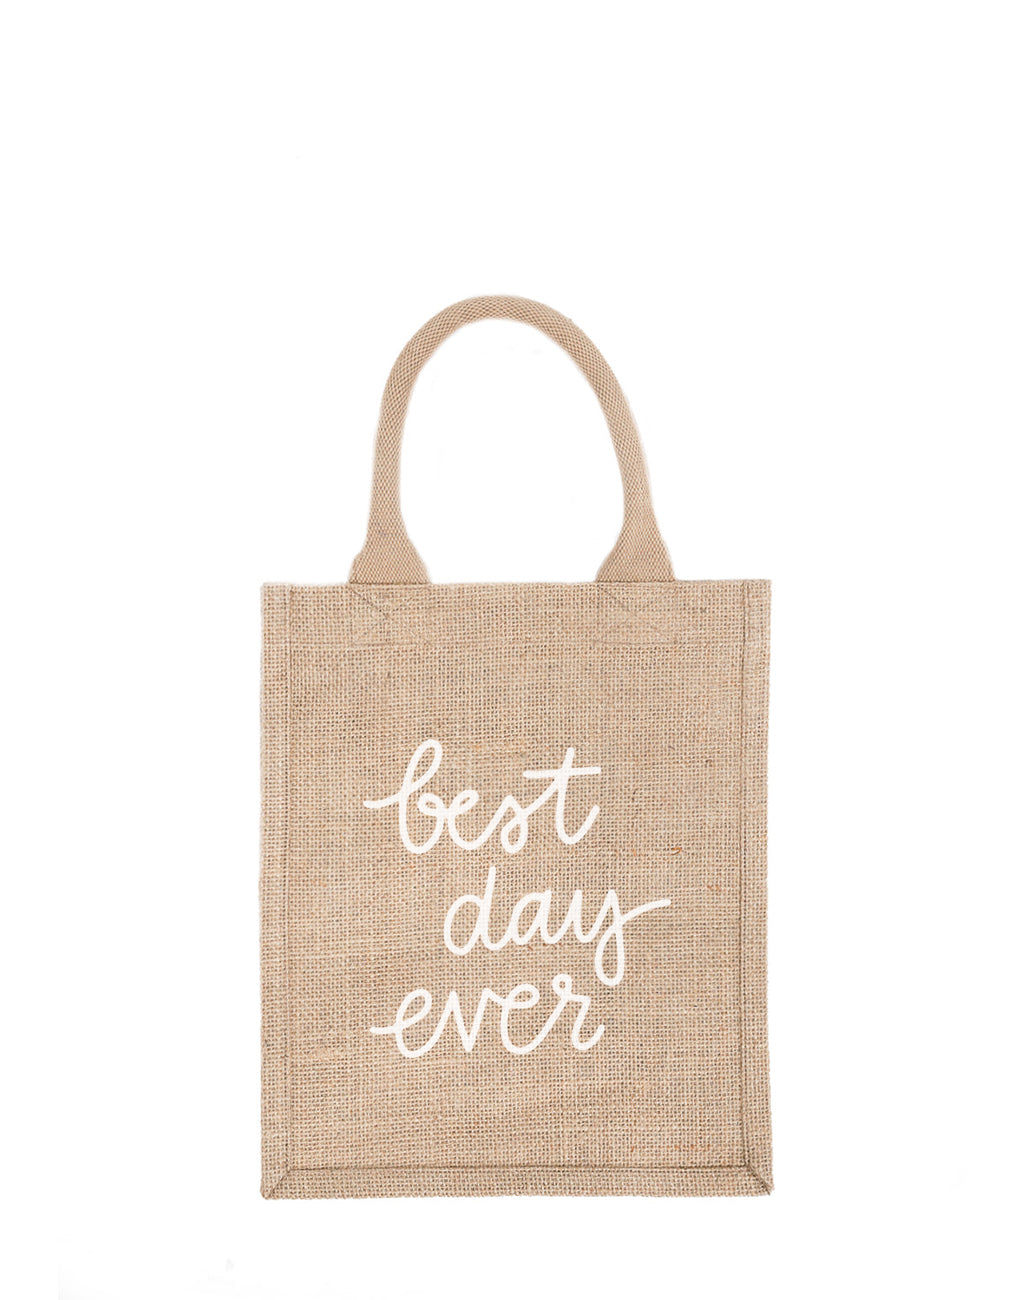 Medium Best Day Ever Reusable Gift Tote In White Font | The Little Market